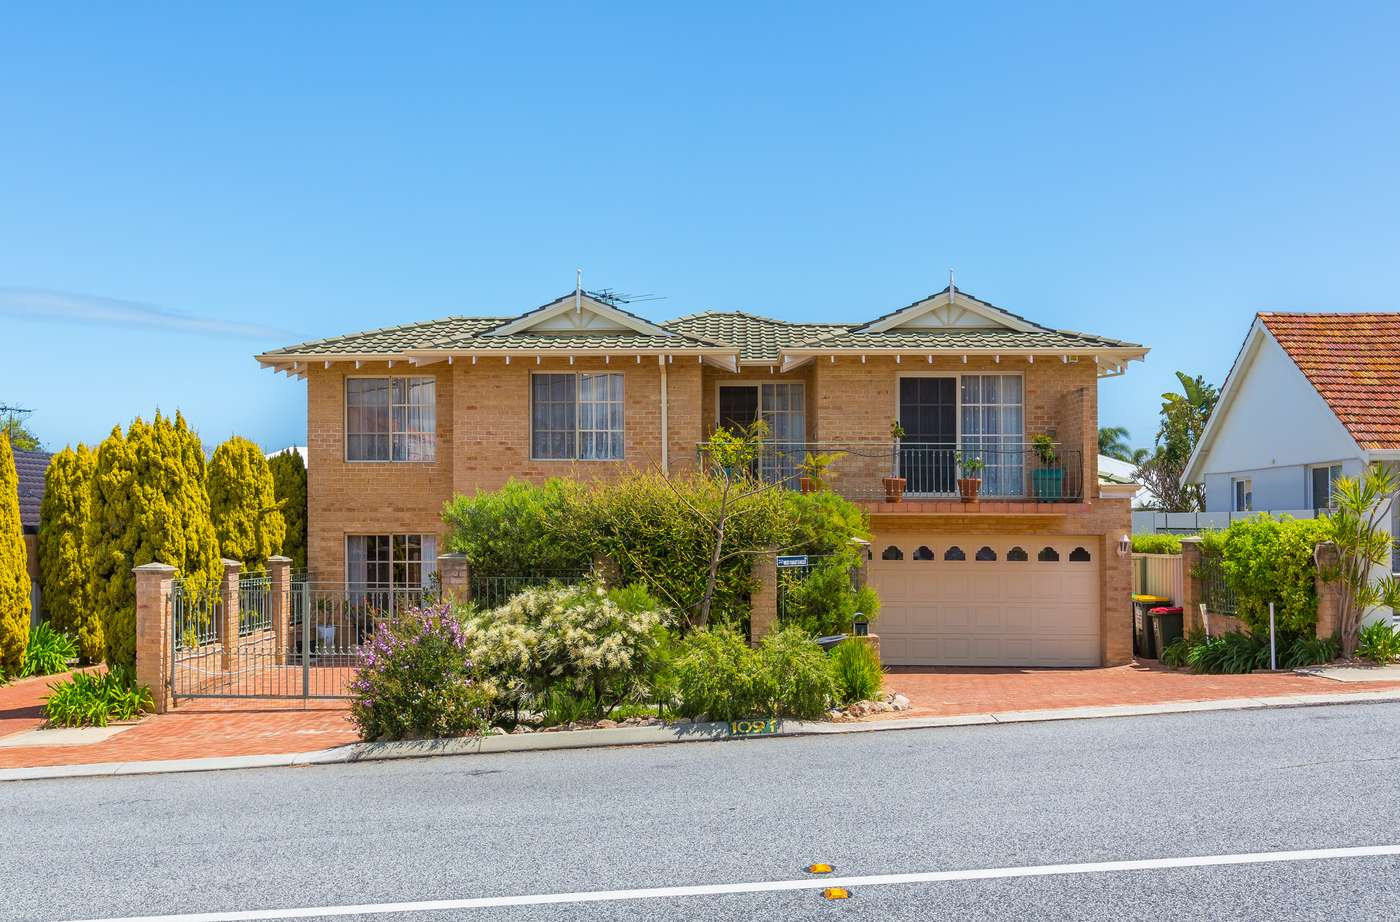 Main view of Homely unit listing, 1/109 HAYES AVENUE, Yokine, WA 6060